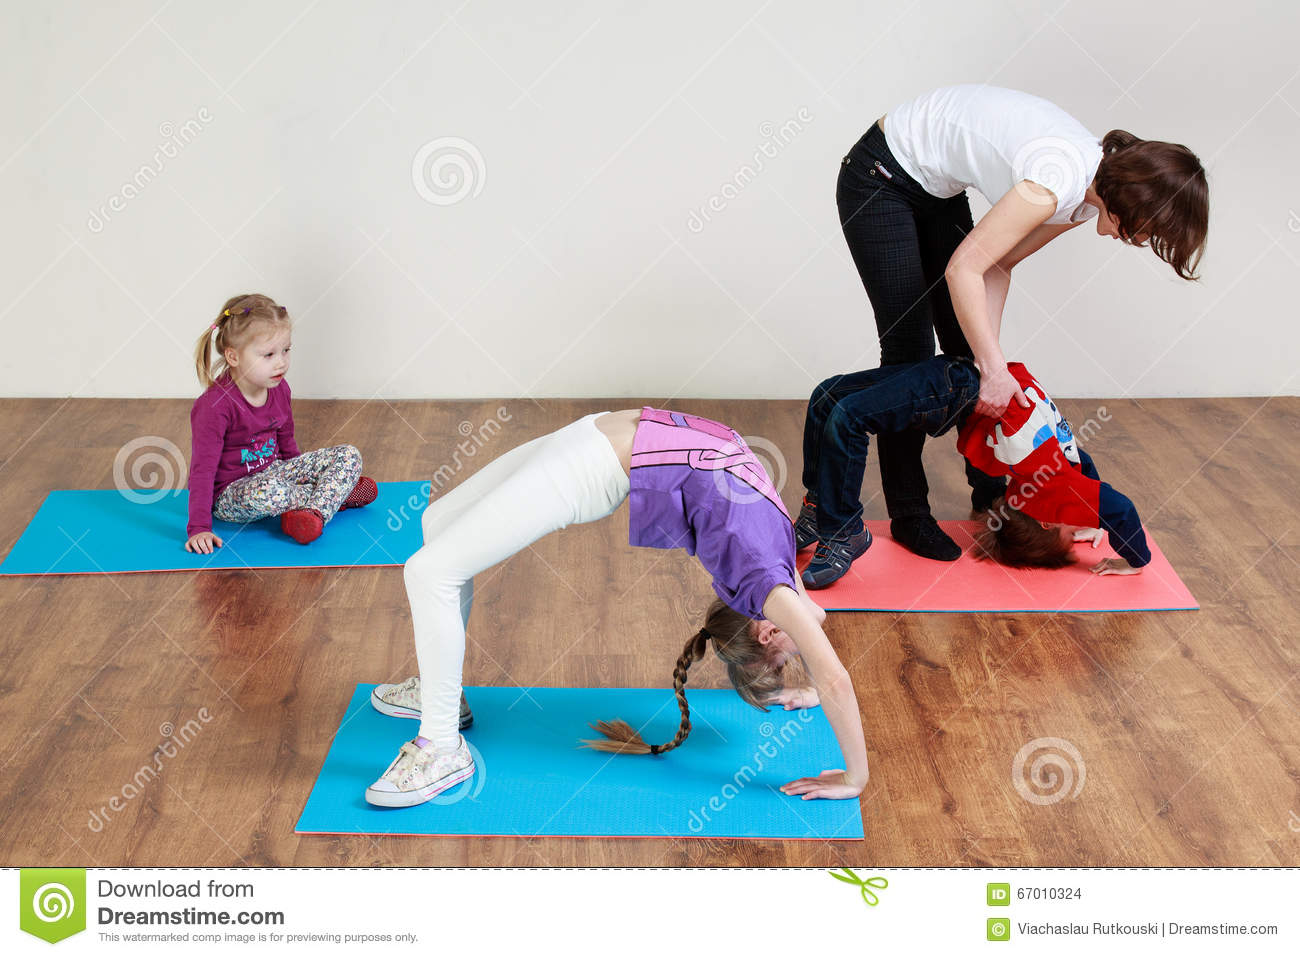 Children are doing a bridge exercise with the help of a trainer